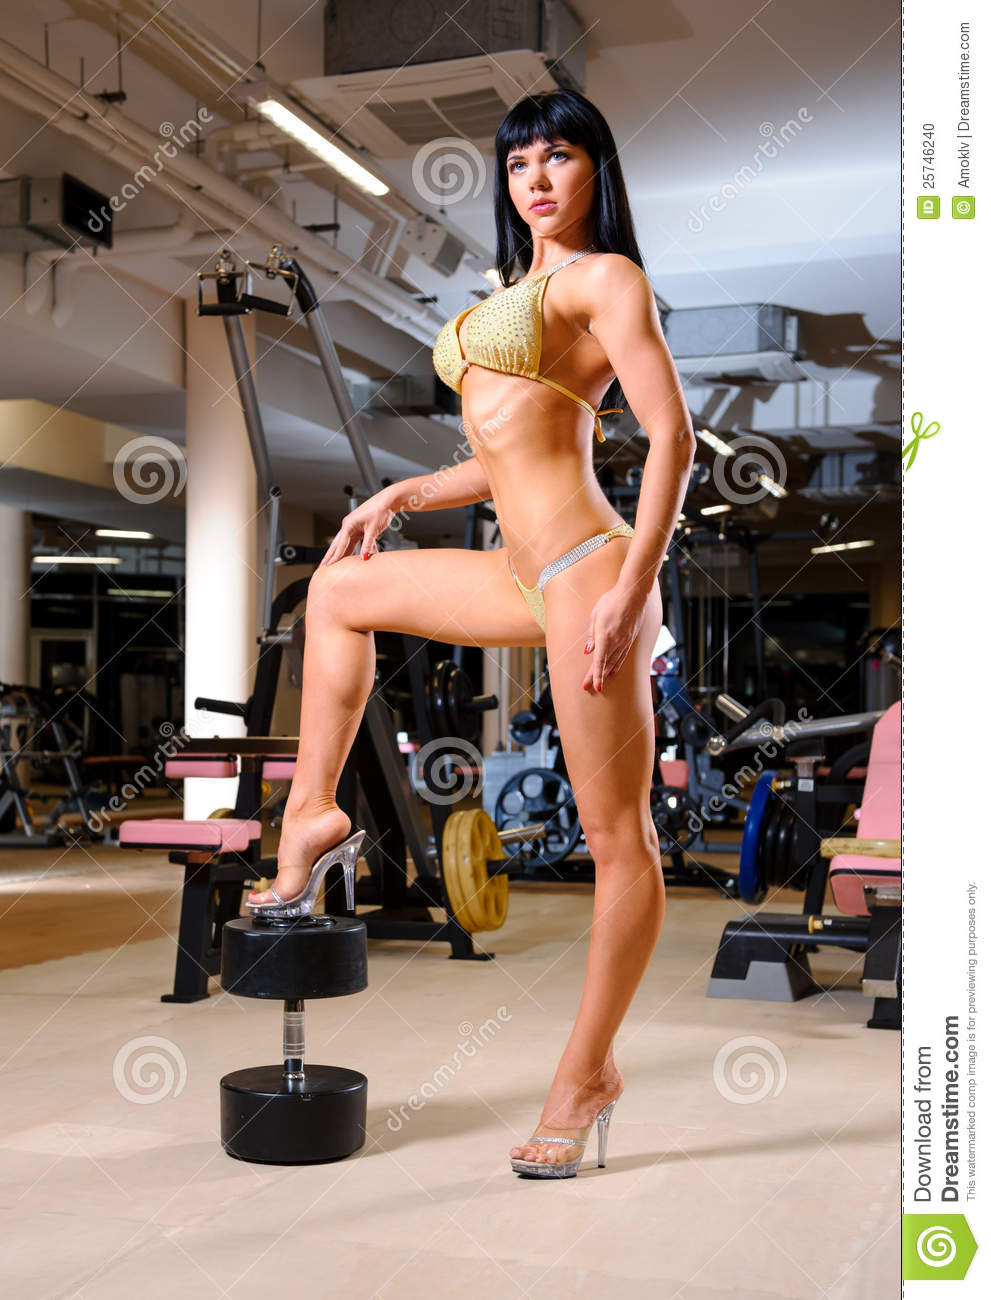 Woman posing in the fitness club